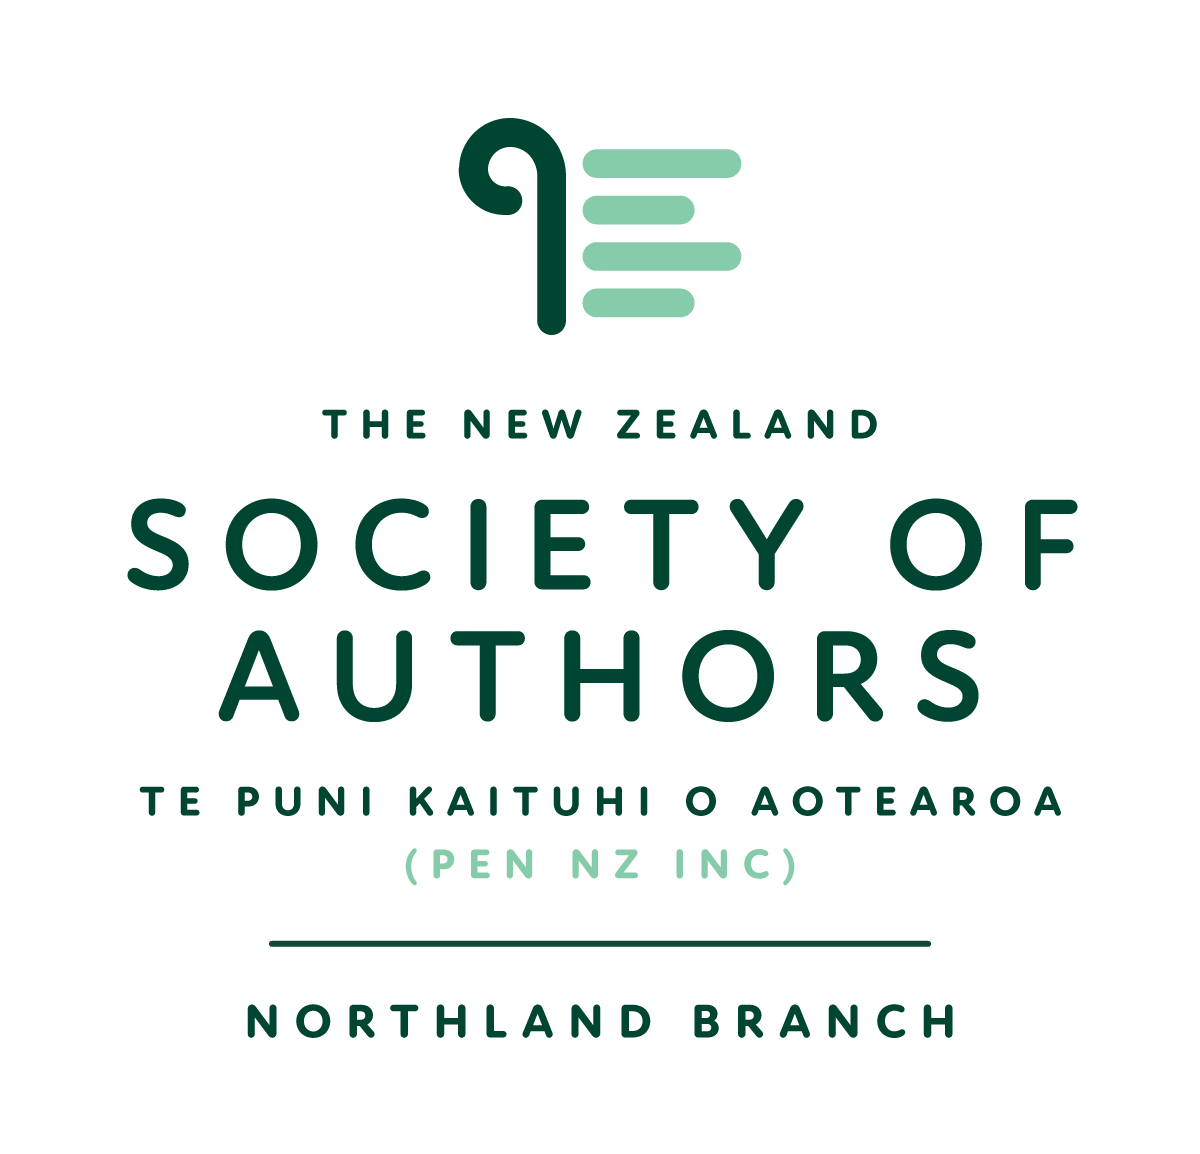 The official blog of the NZ Society of Authors Northland Branch